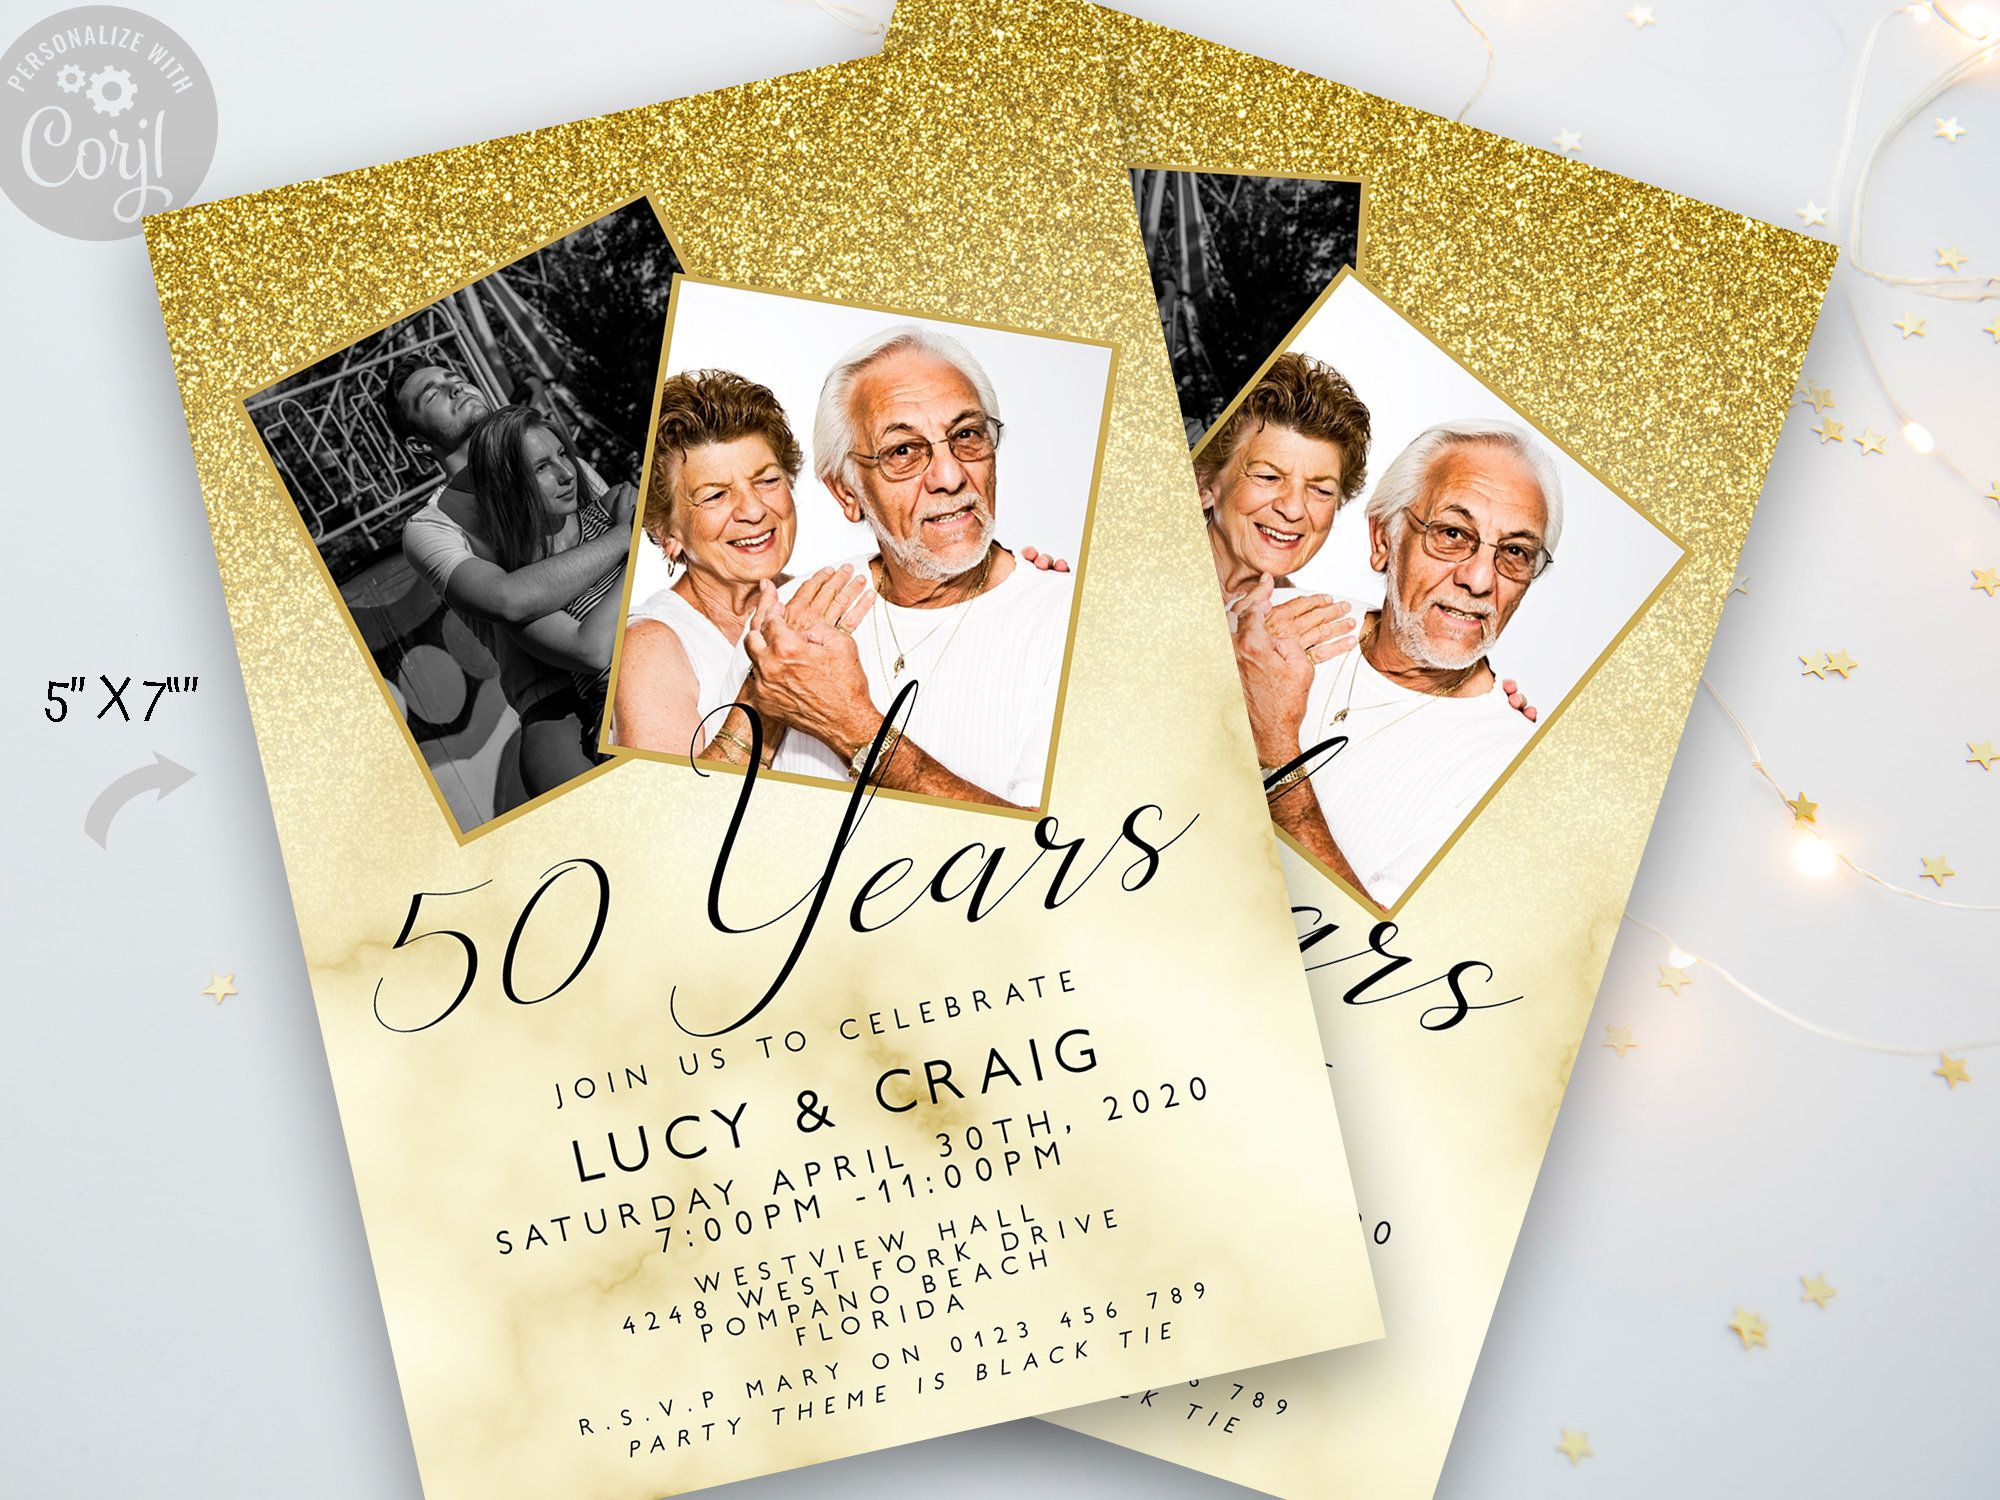 005 Unbelievable 50th Wedding Anniversary Party Invitation Template Photo  Templates FreeFull